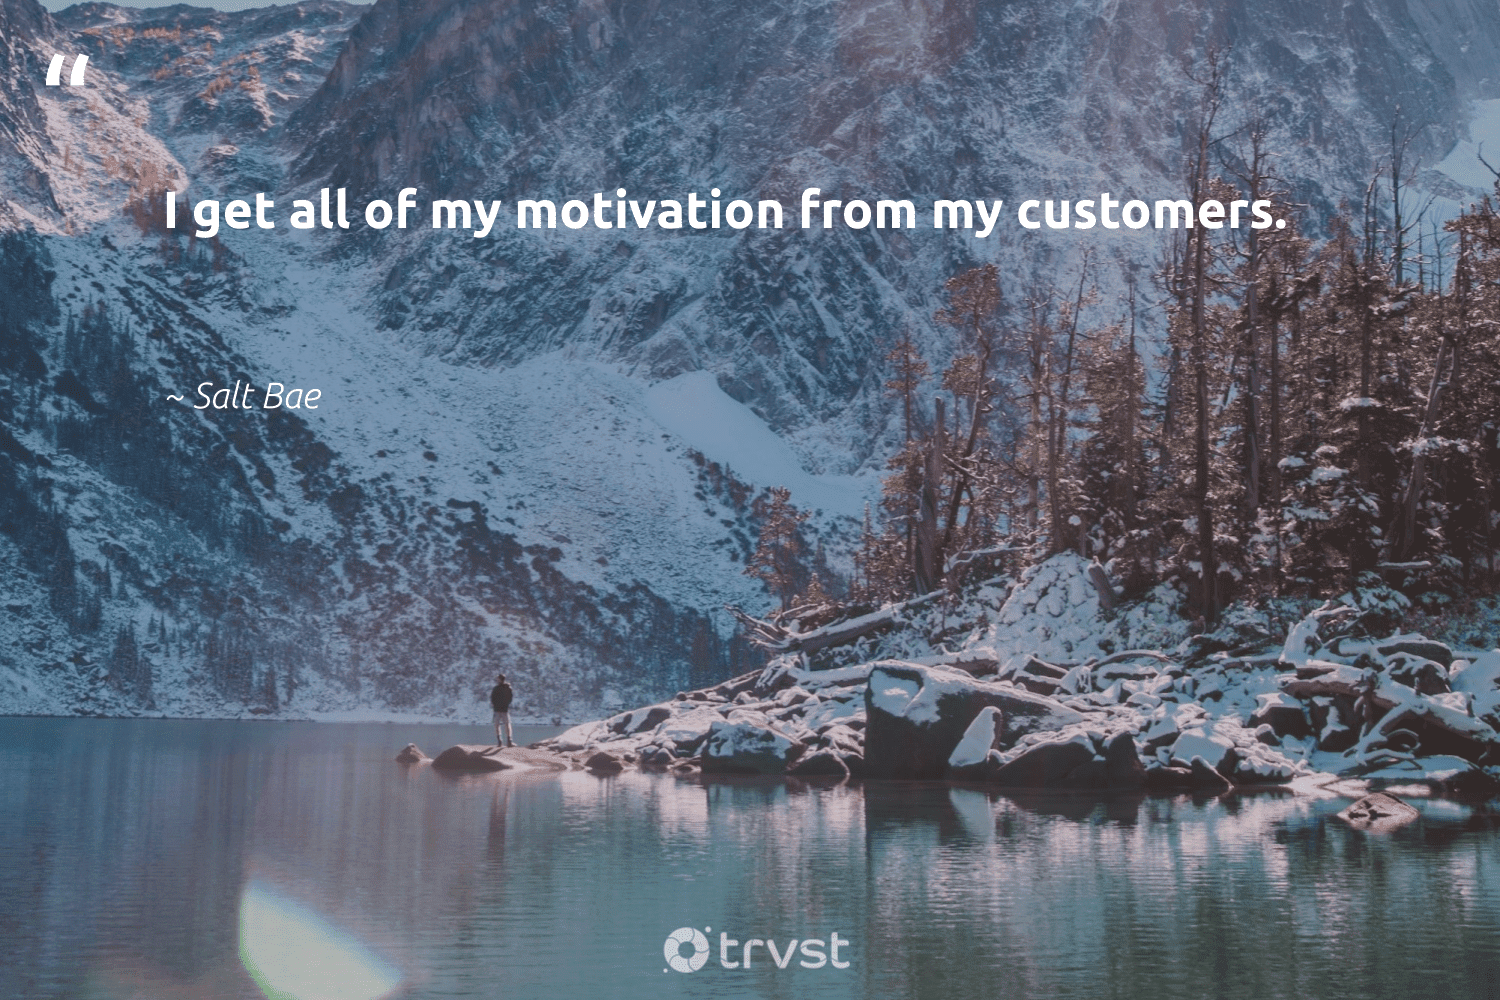 """""""I get all of my motivation from my customers.""""  - Salt Bae #trvst #quotes #motivation #customers #mindful #takethefirststep #nevergiveup #bethechange #goals #createchange #changemakers #dosomething"""